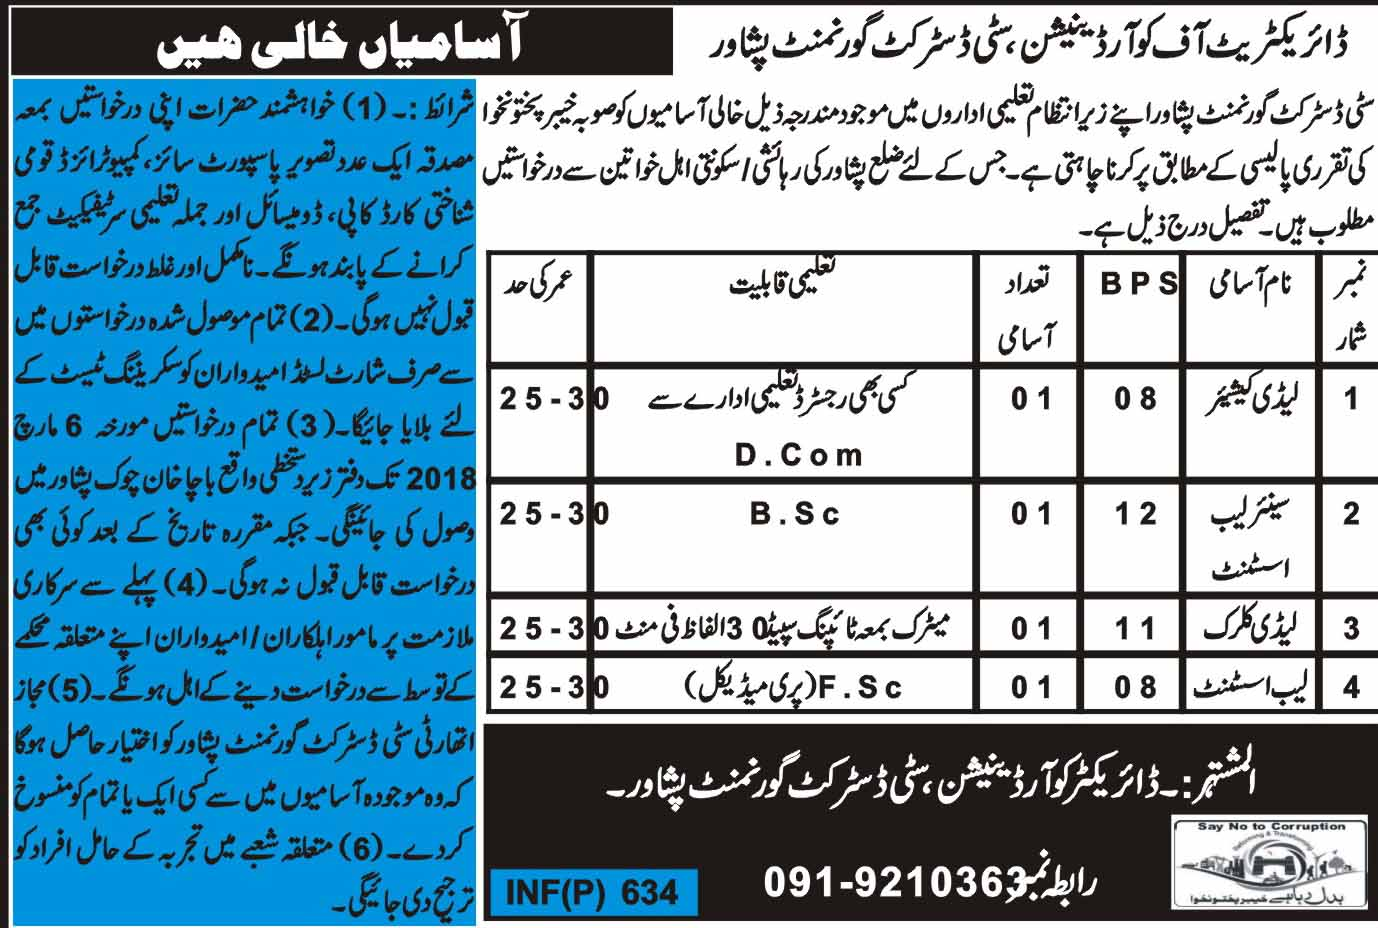 04 Jobs in City District Government Peshawar 06th February 2018 Daily Mashriq Newspaper